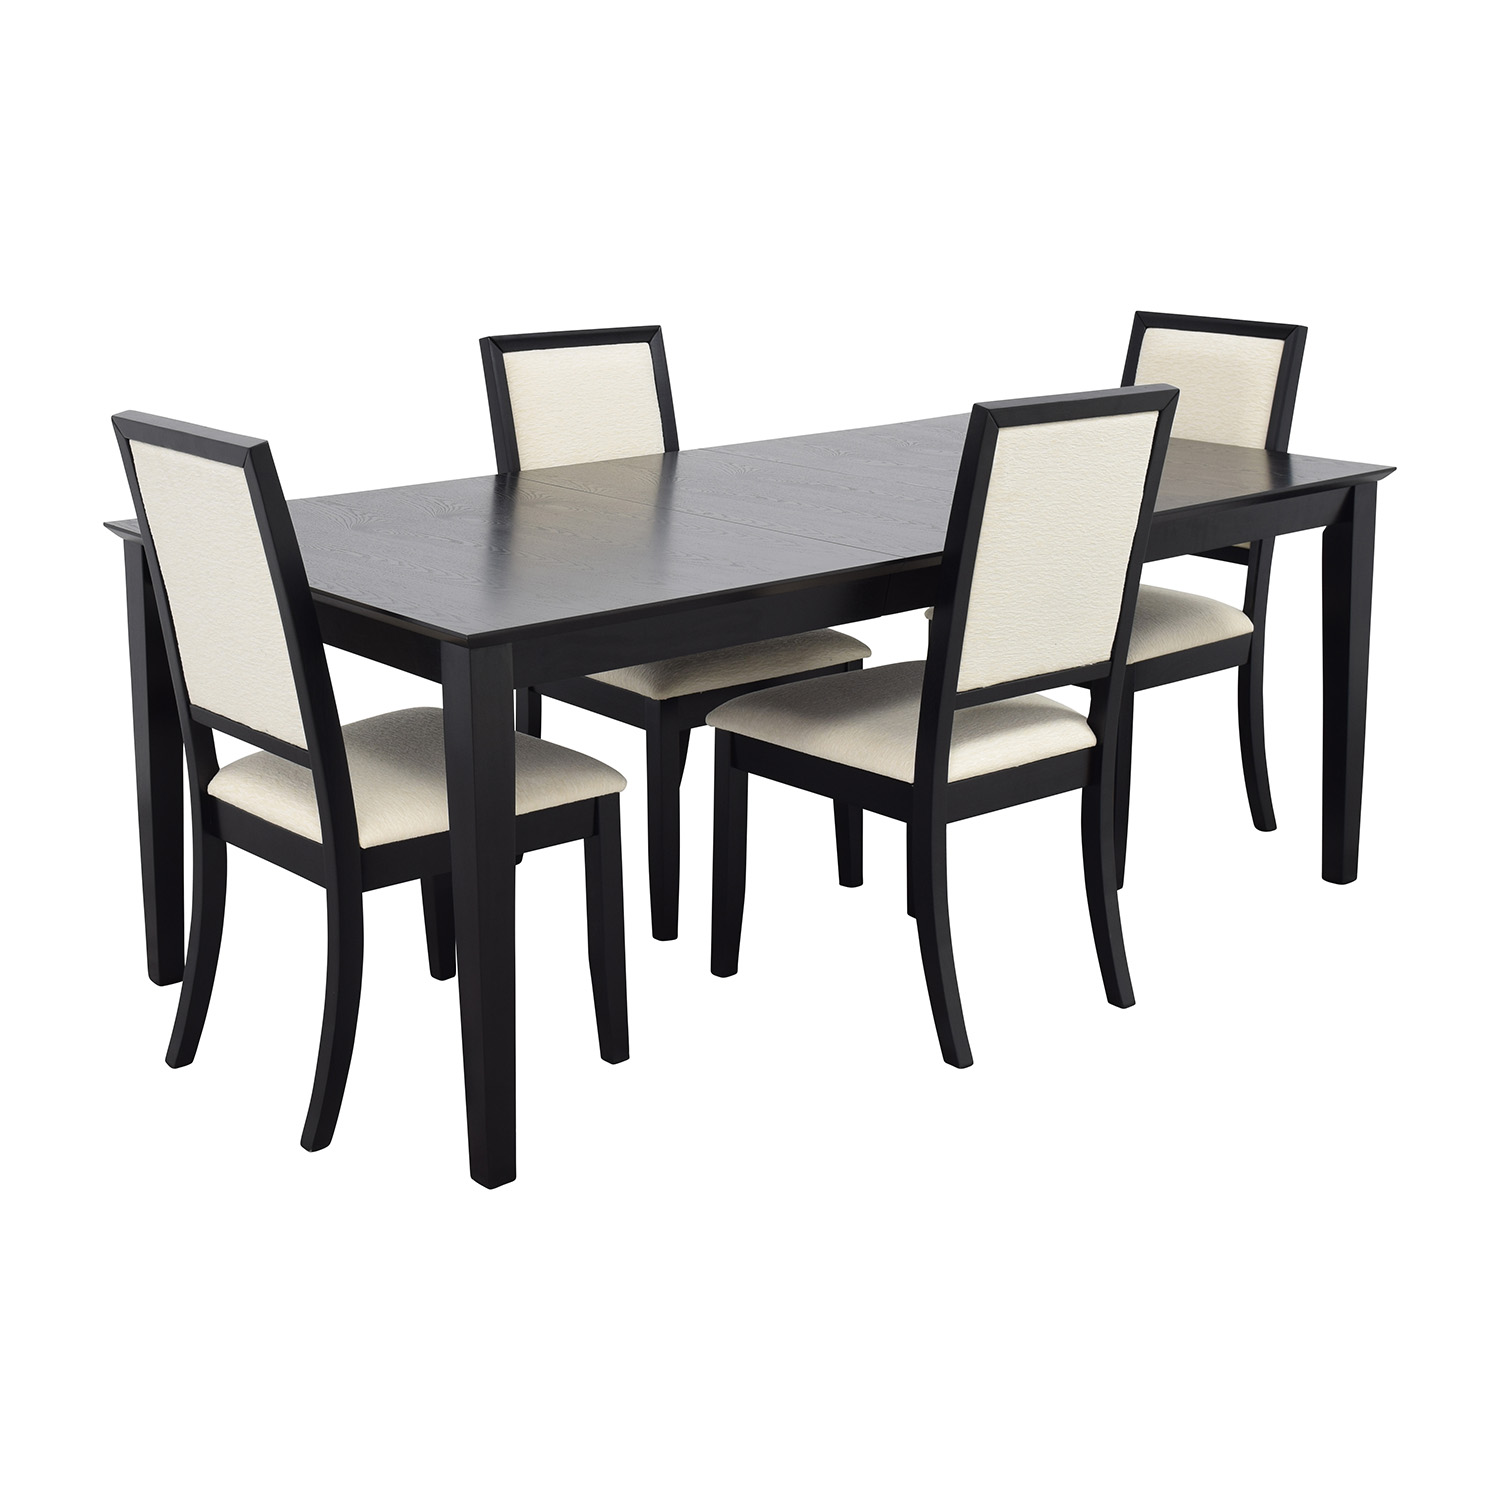 Off harlem furniture black dining